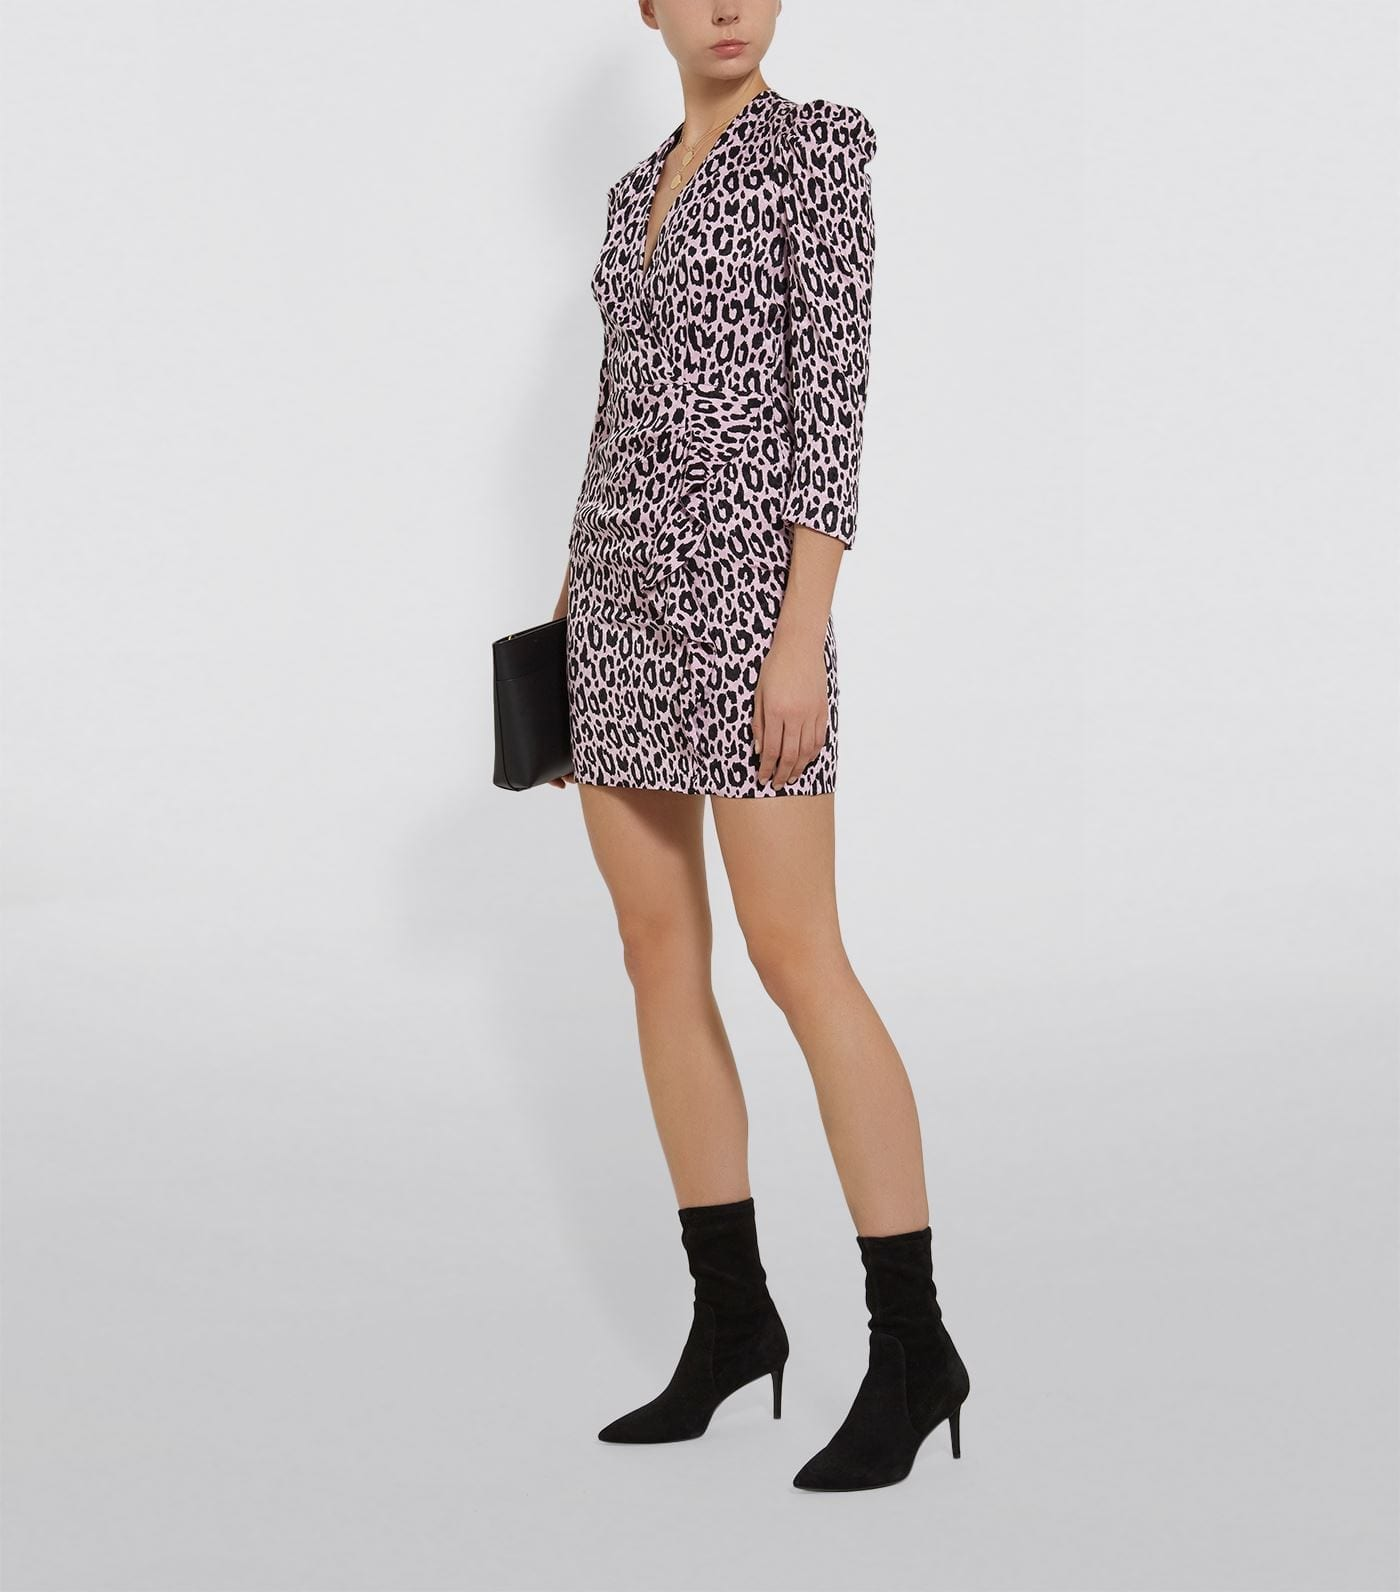 MAJE Leopard Print Dress